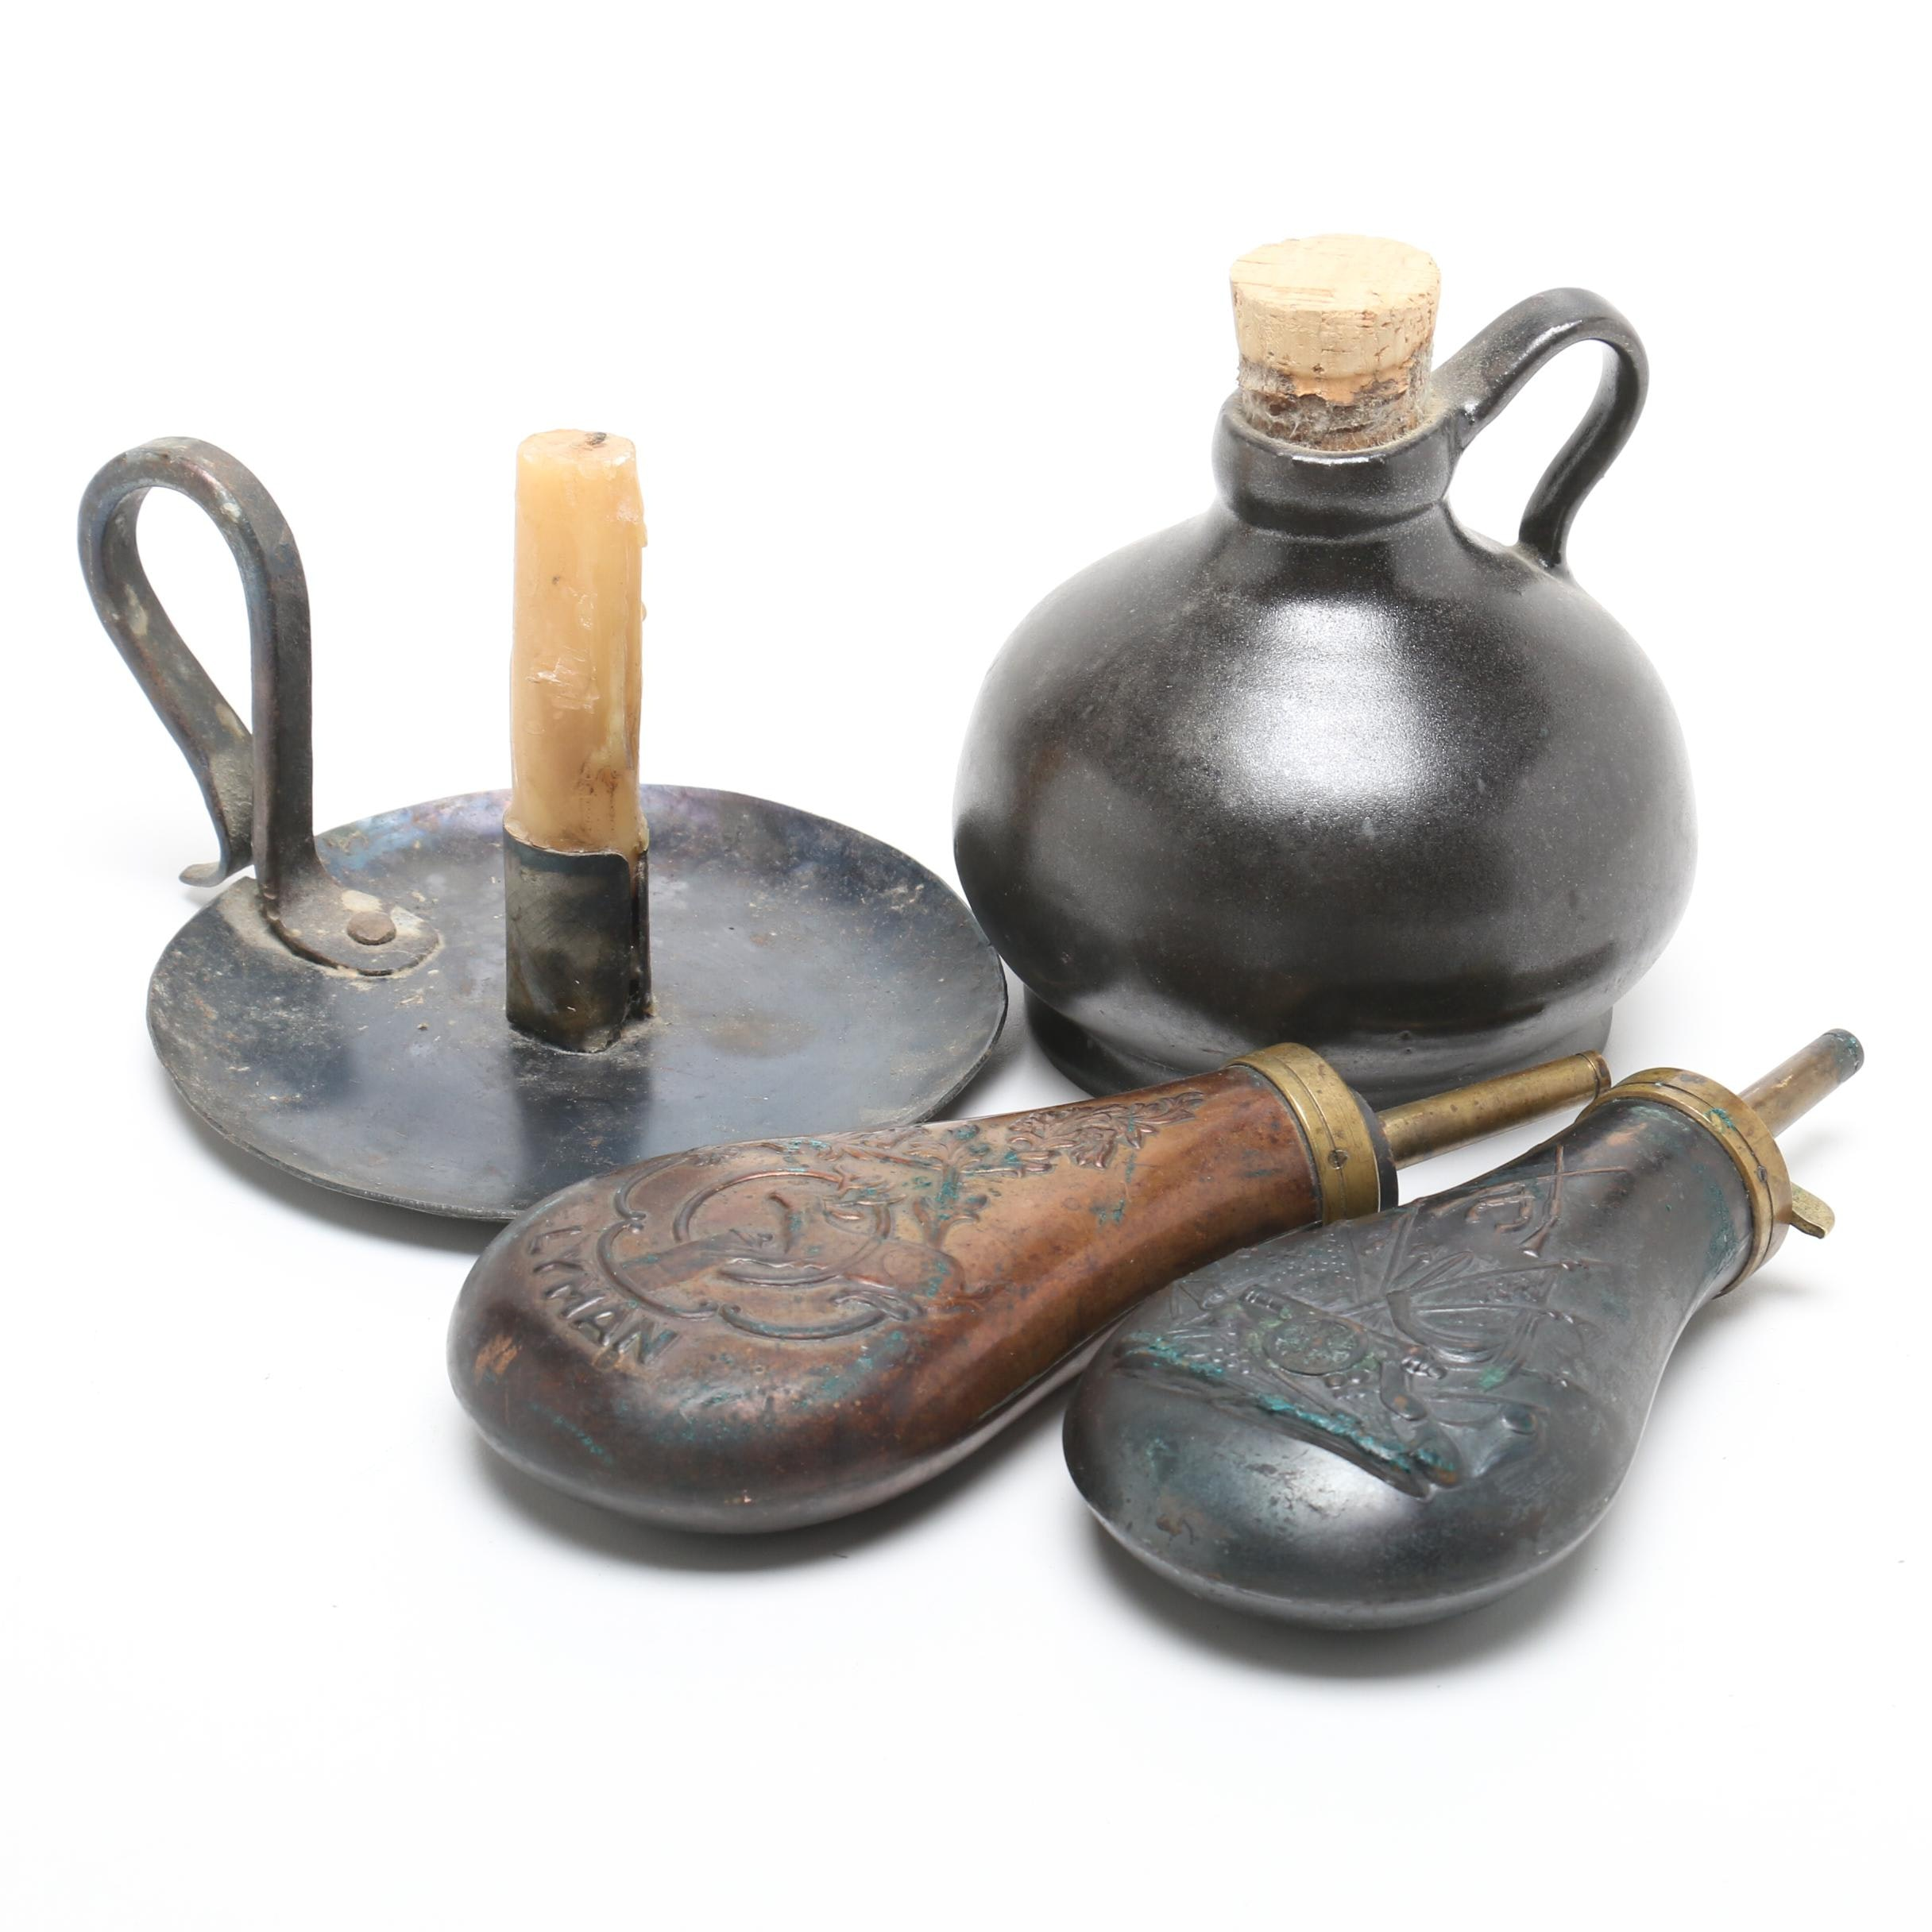 Vintage Powder Flasks, Metal Candle Holder, and Stoneware Jug